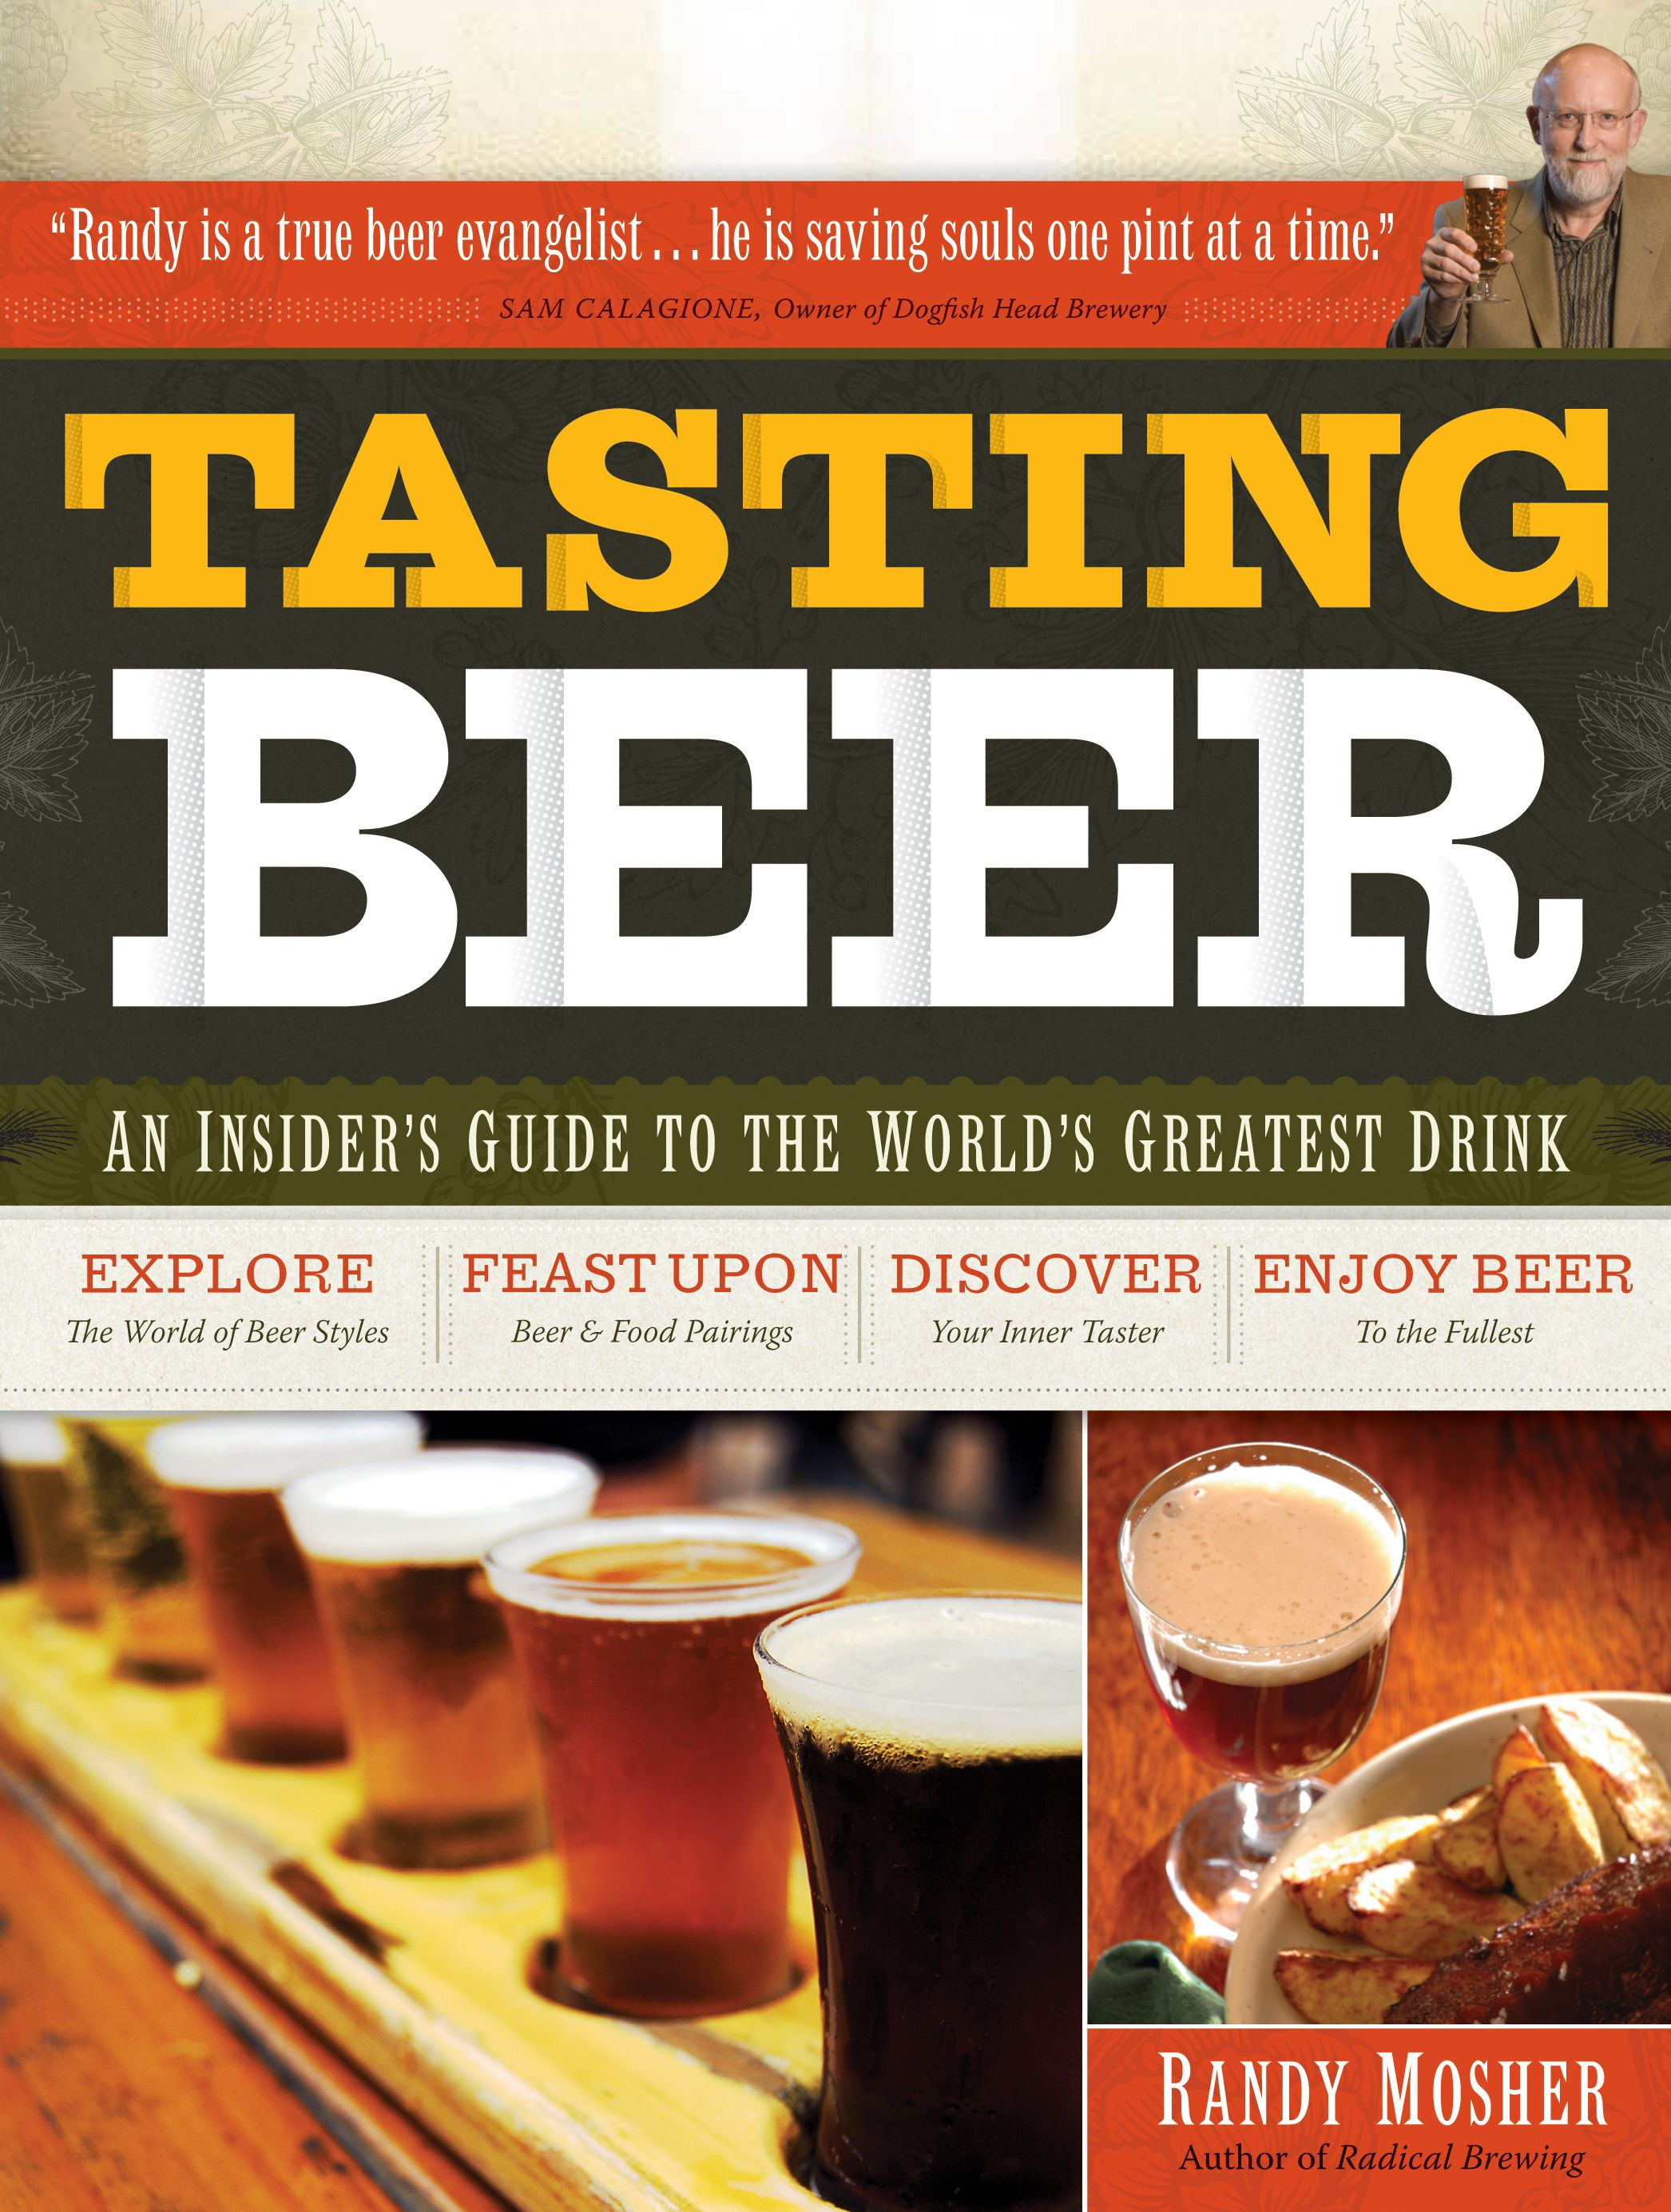 Tasting Beer - Randy Mosher  The best book about beer (not about brewing) I ever read. Each page is full of informations, beautiful photos and illustrations, curiosities...